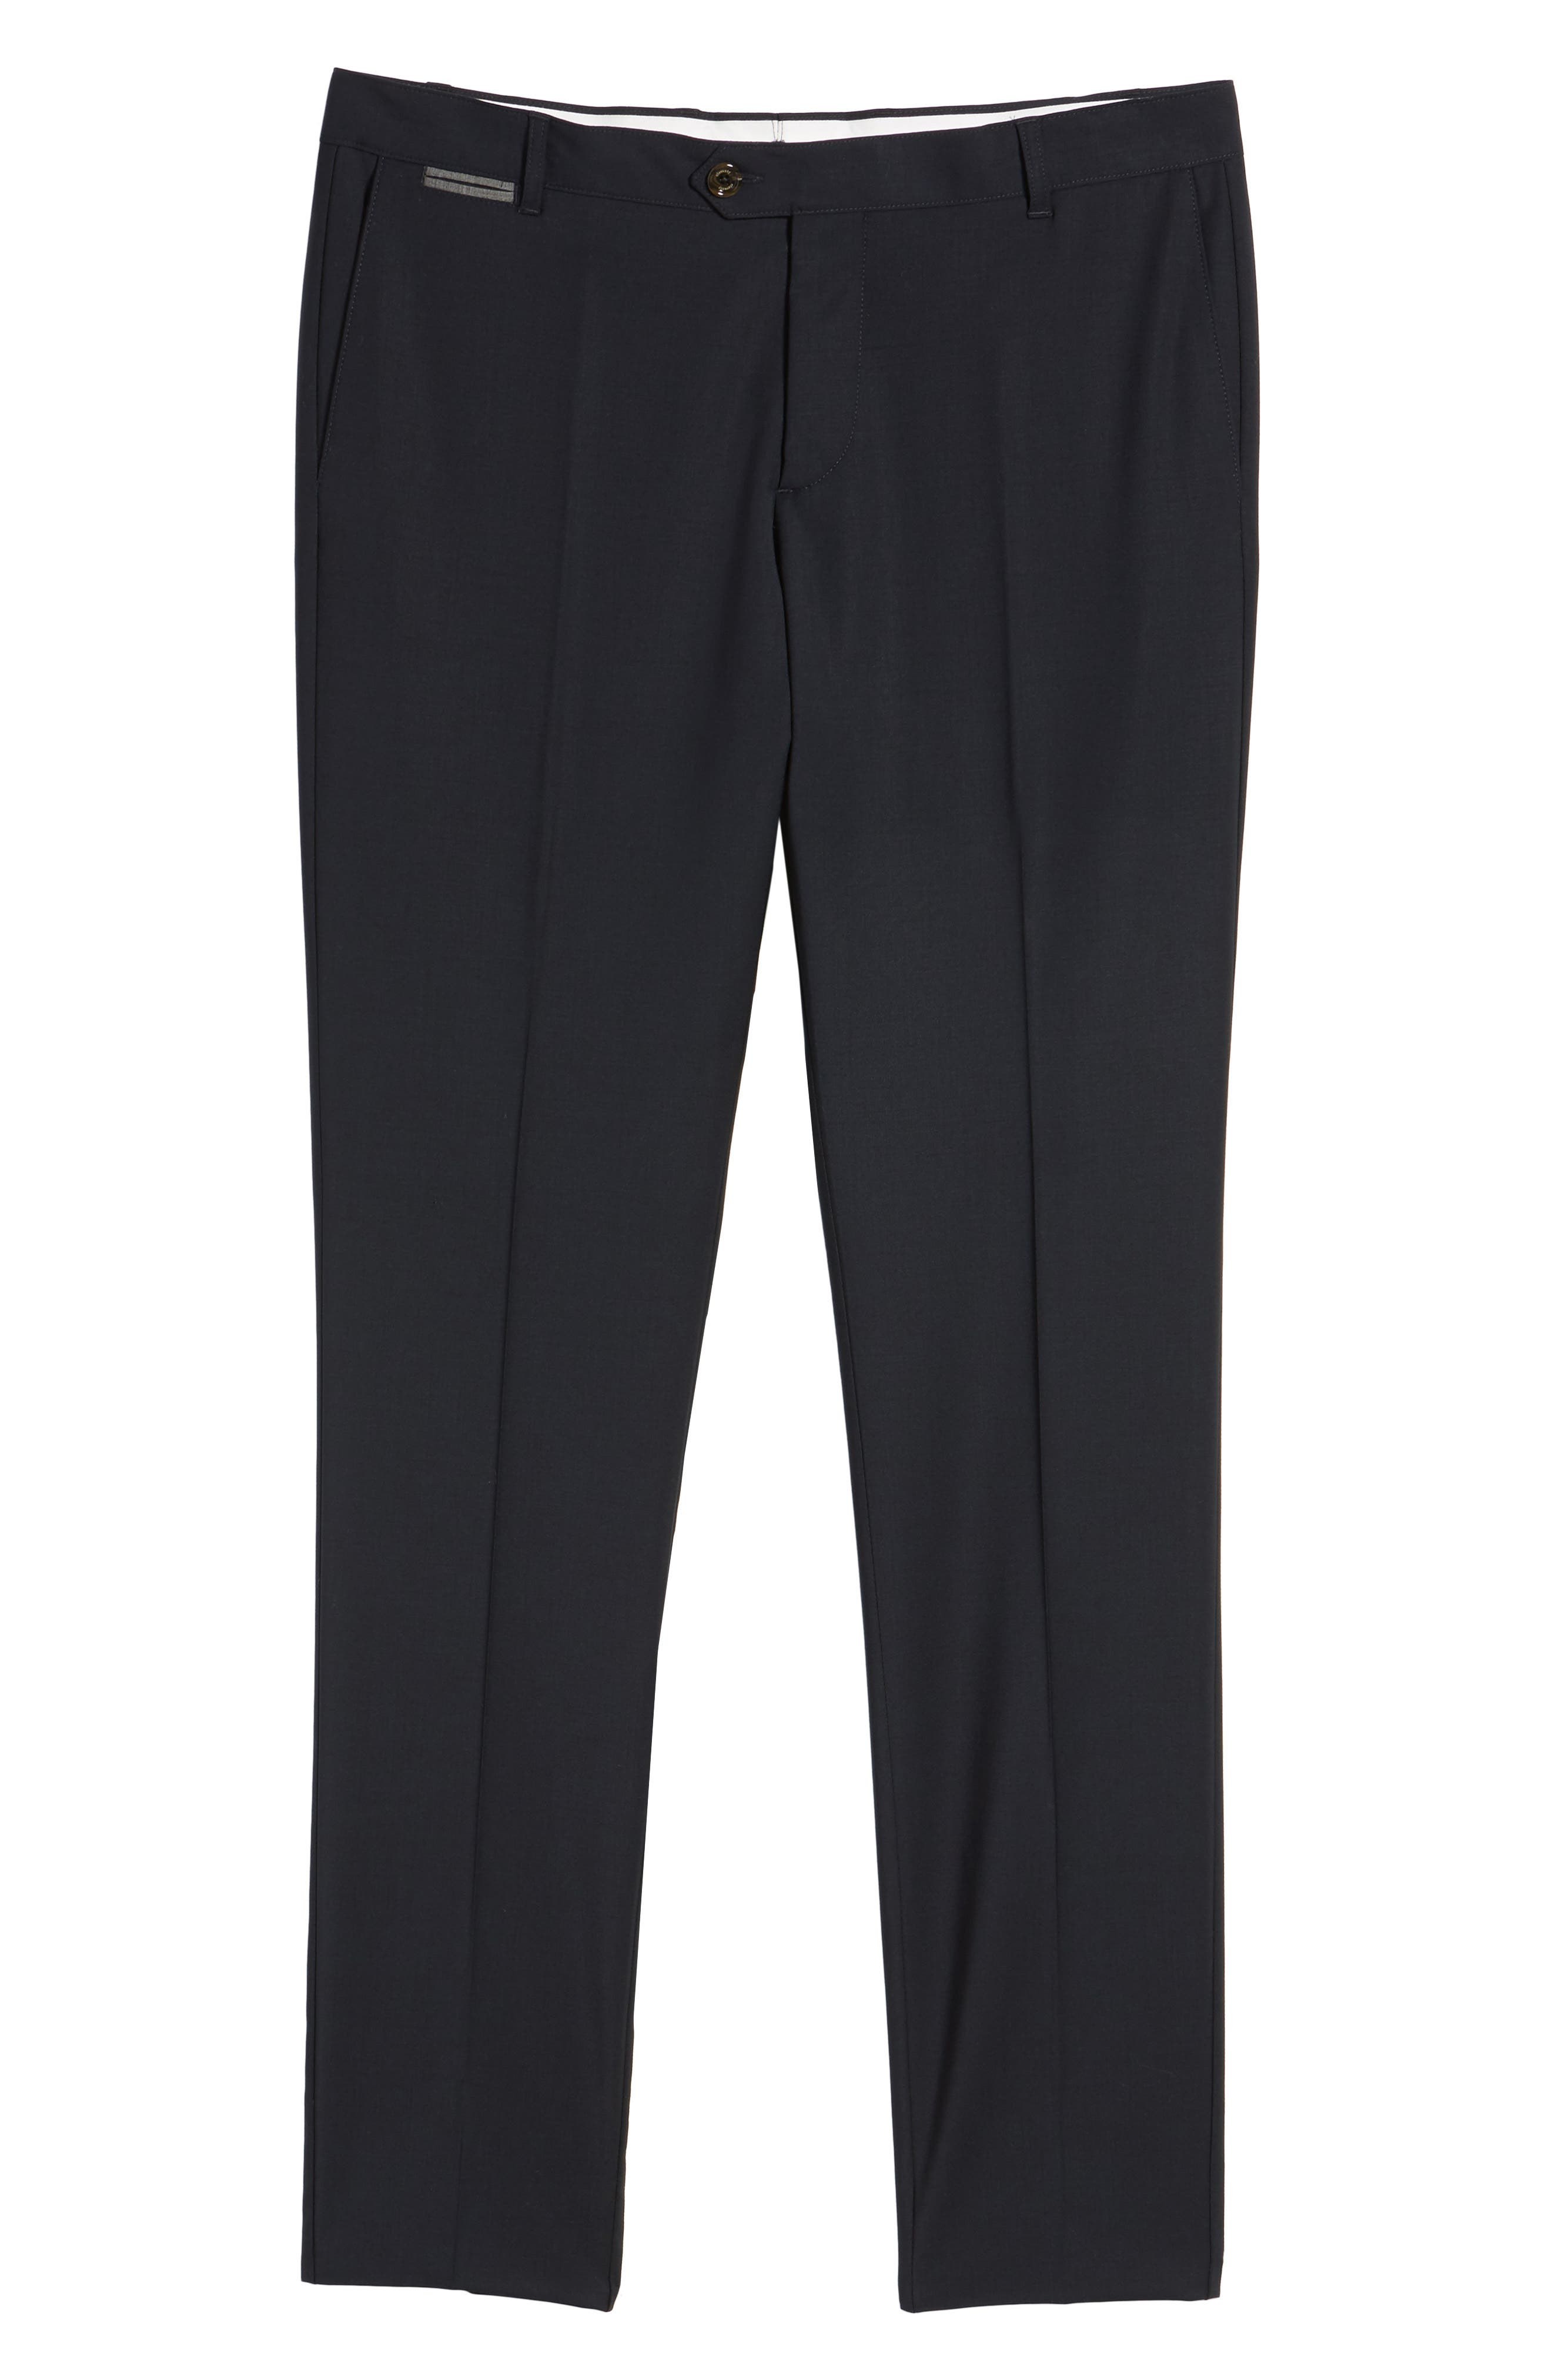 Flat Front Stretch Solid Wool Trousers,                             Alternate thumbnail 12, color,